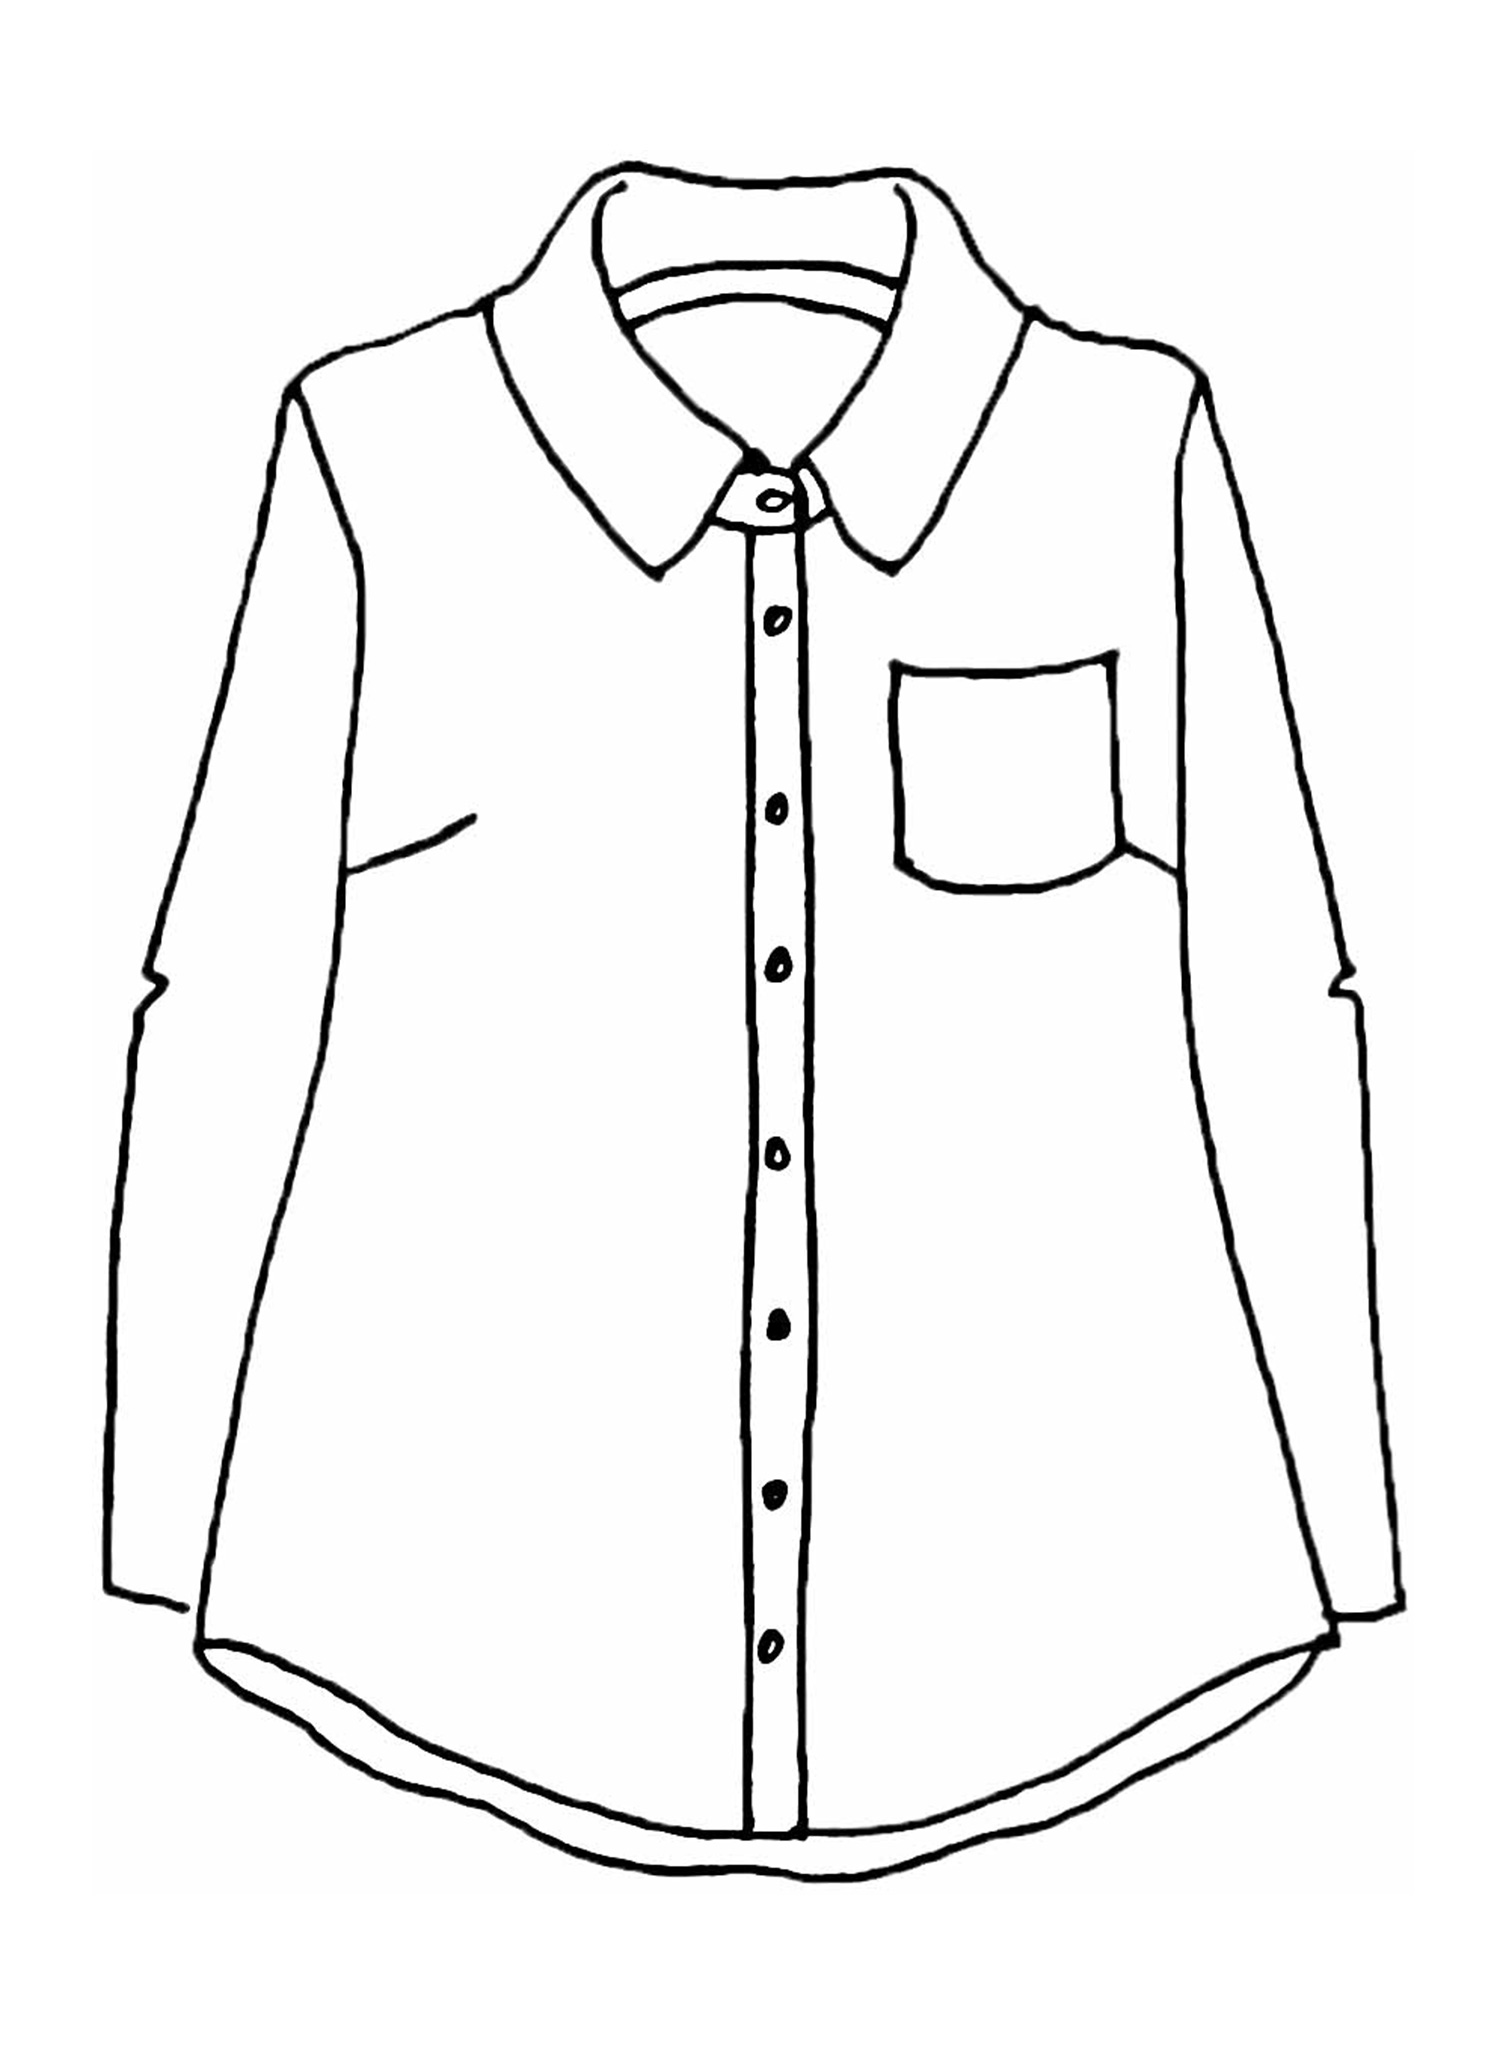 Bias Back Shirt sketch image